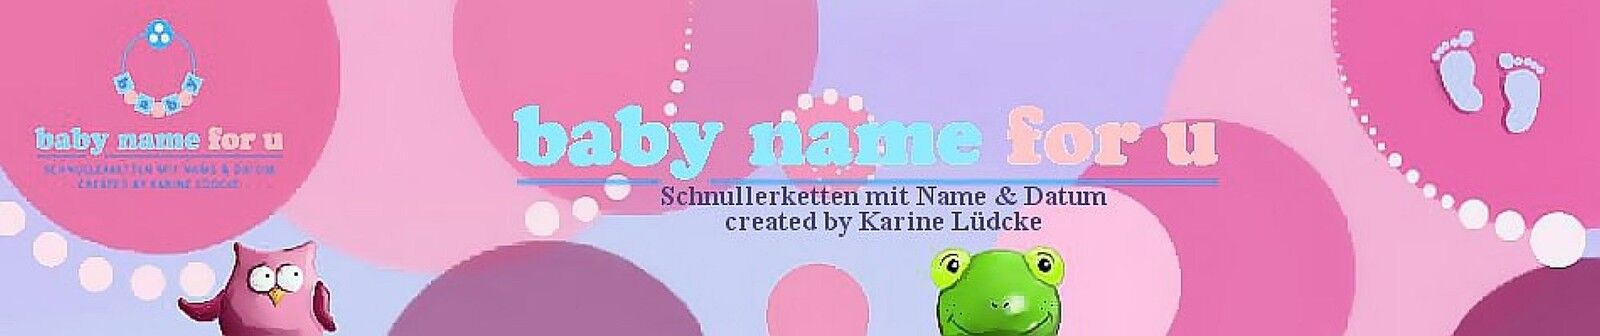 baby name for u